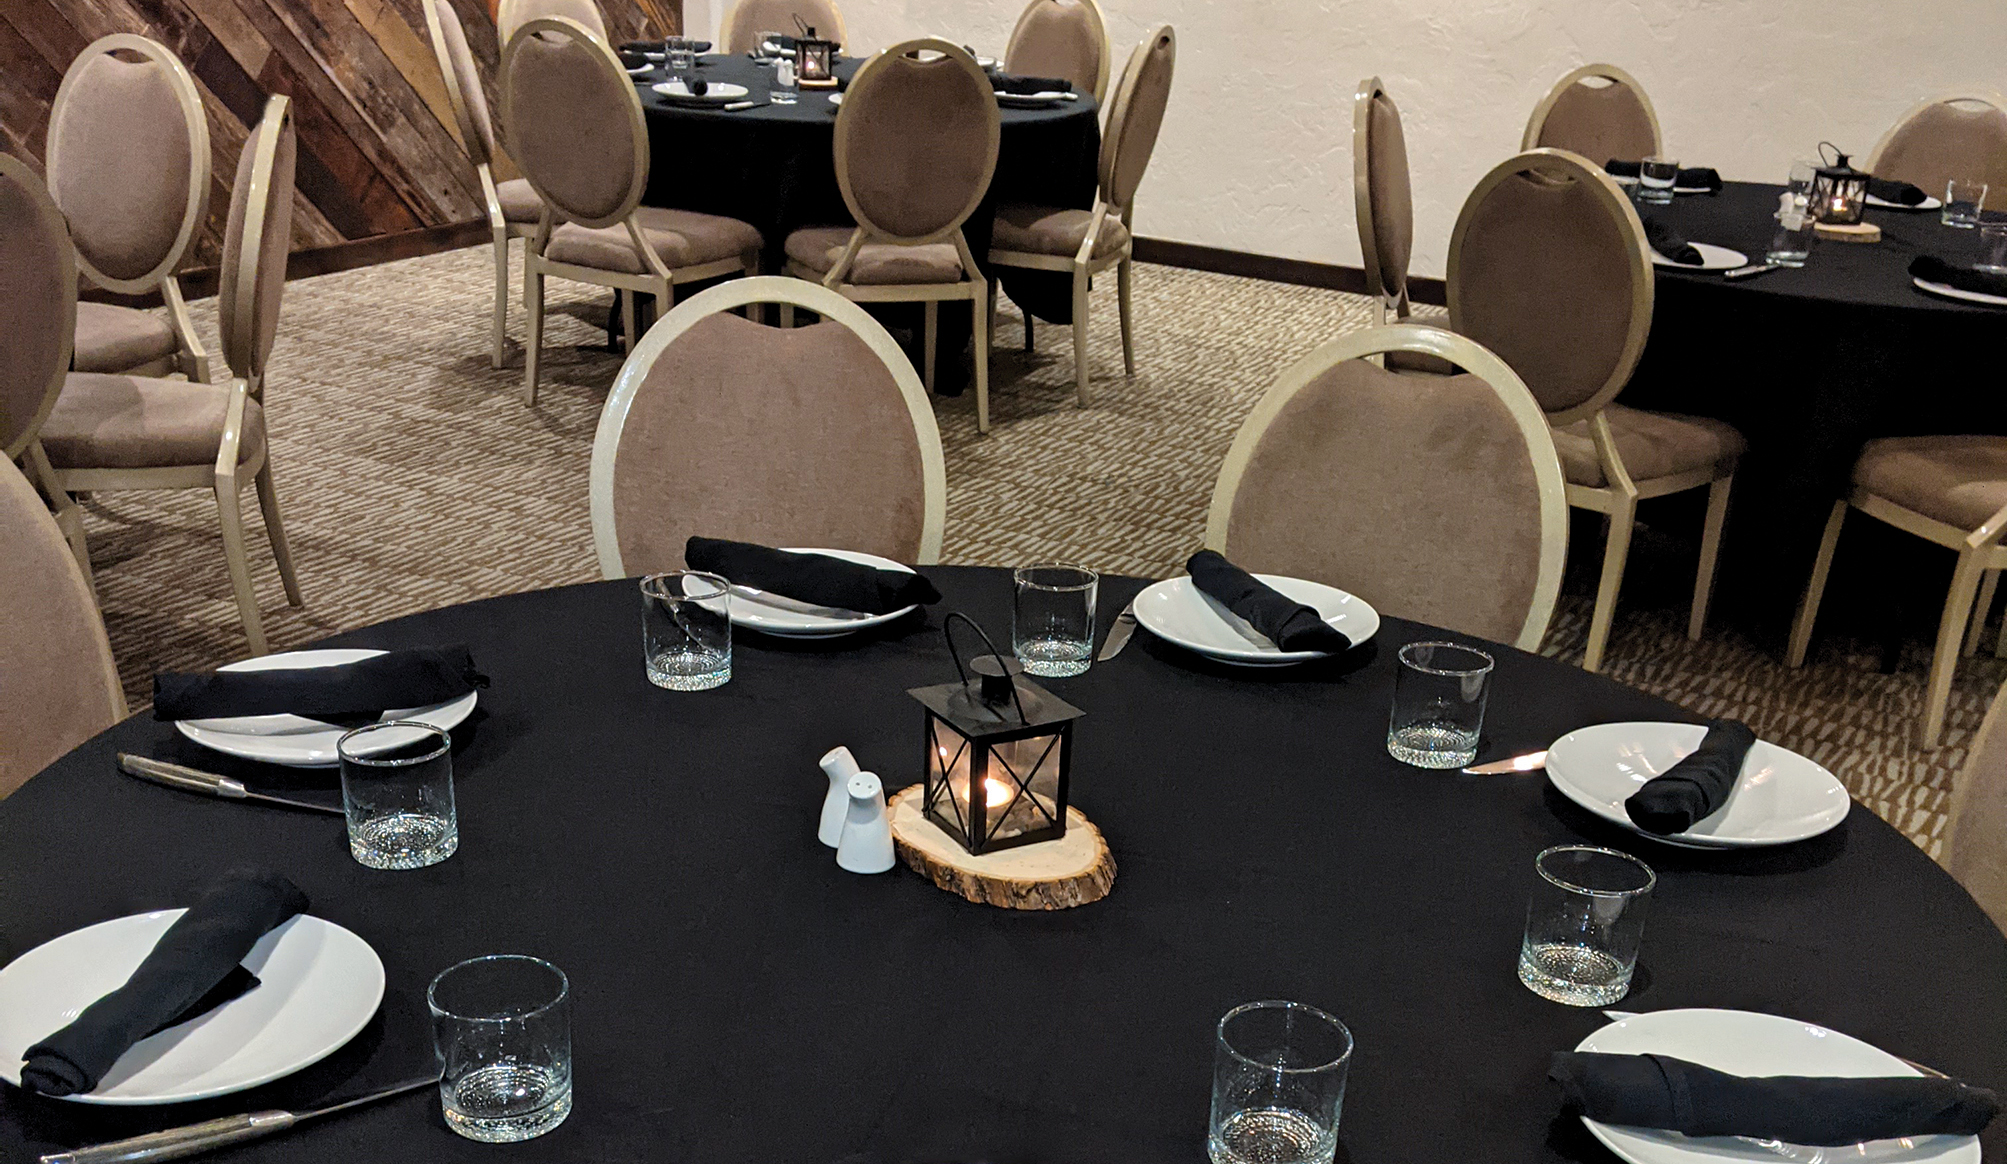 The Great Northern Meeting Rooms provides an intimate location for your meeting or event.